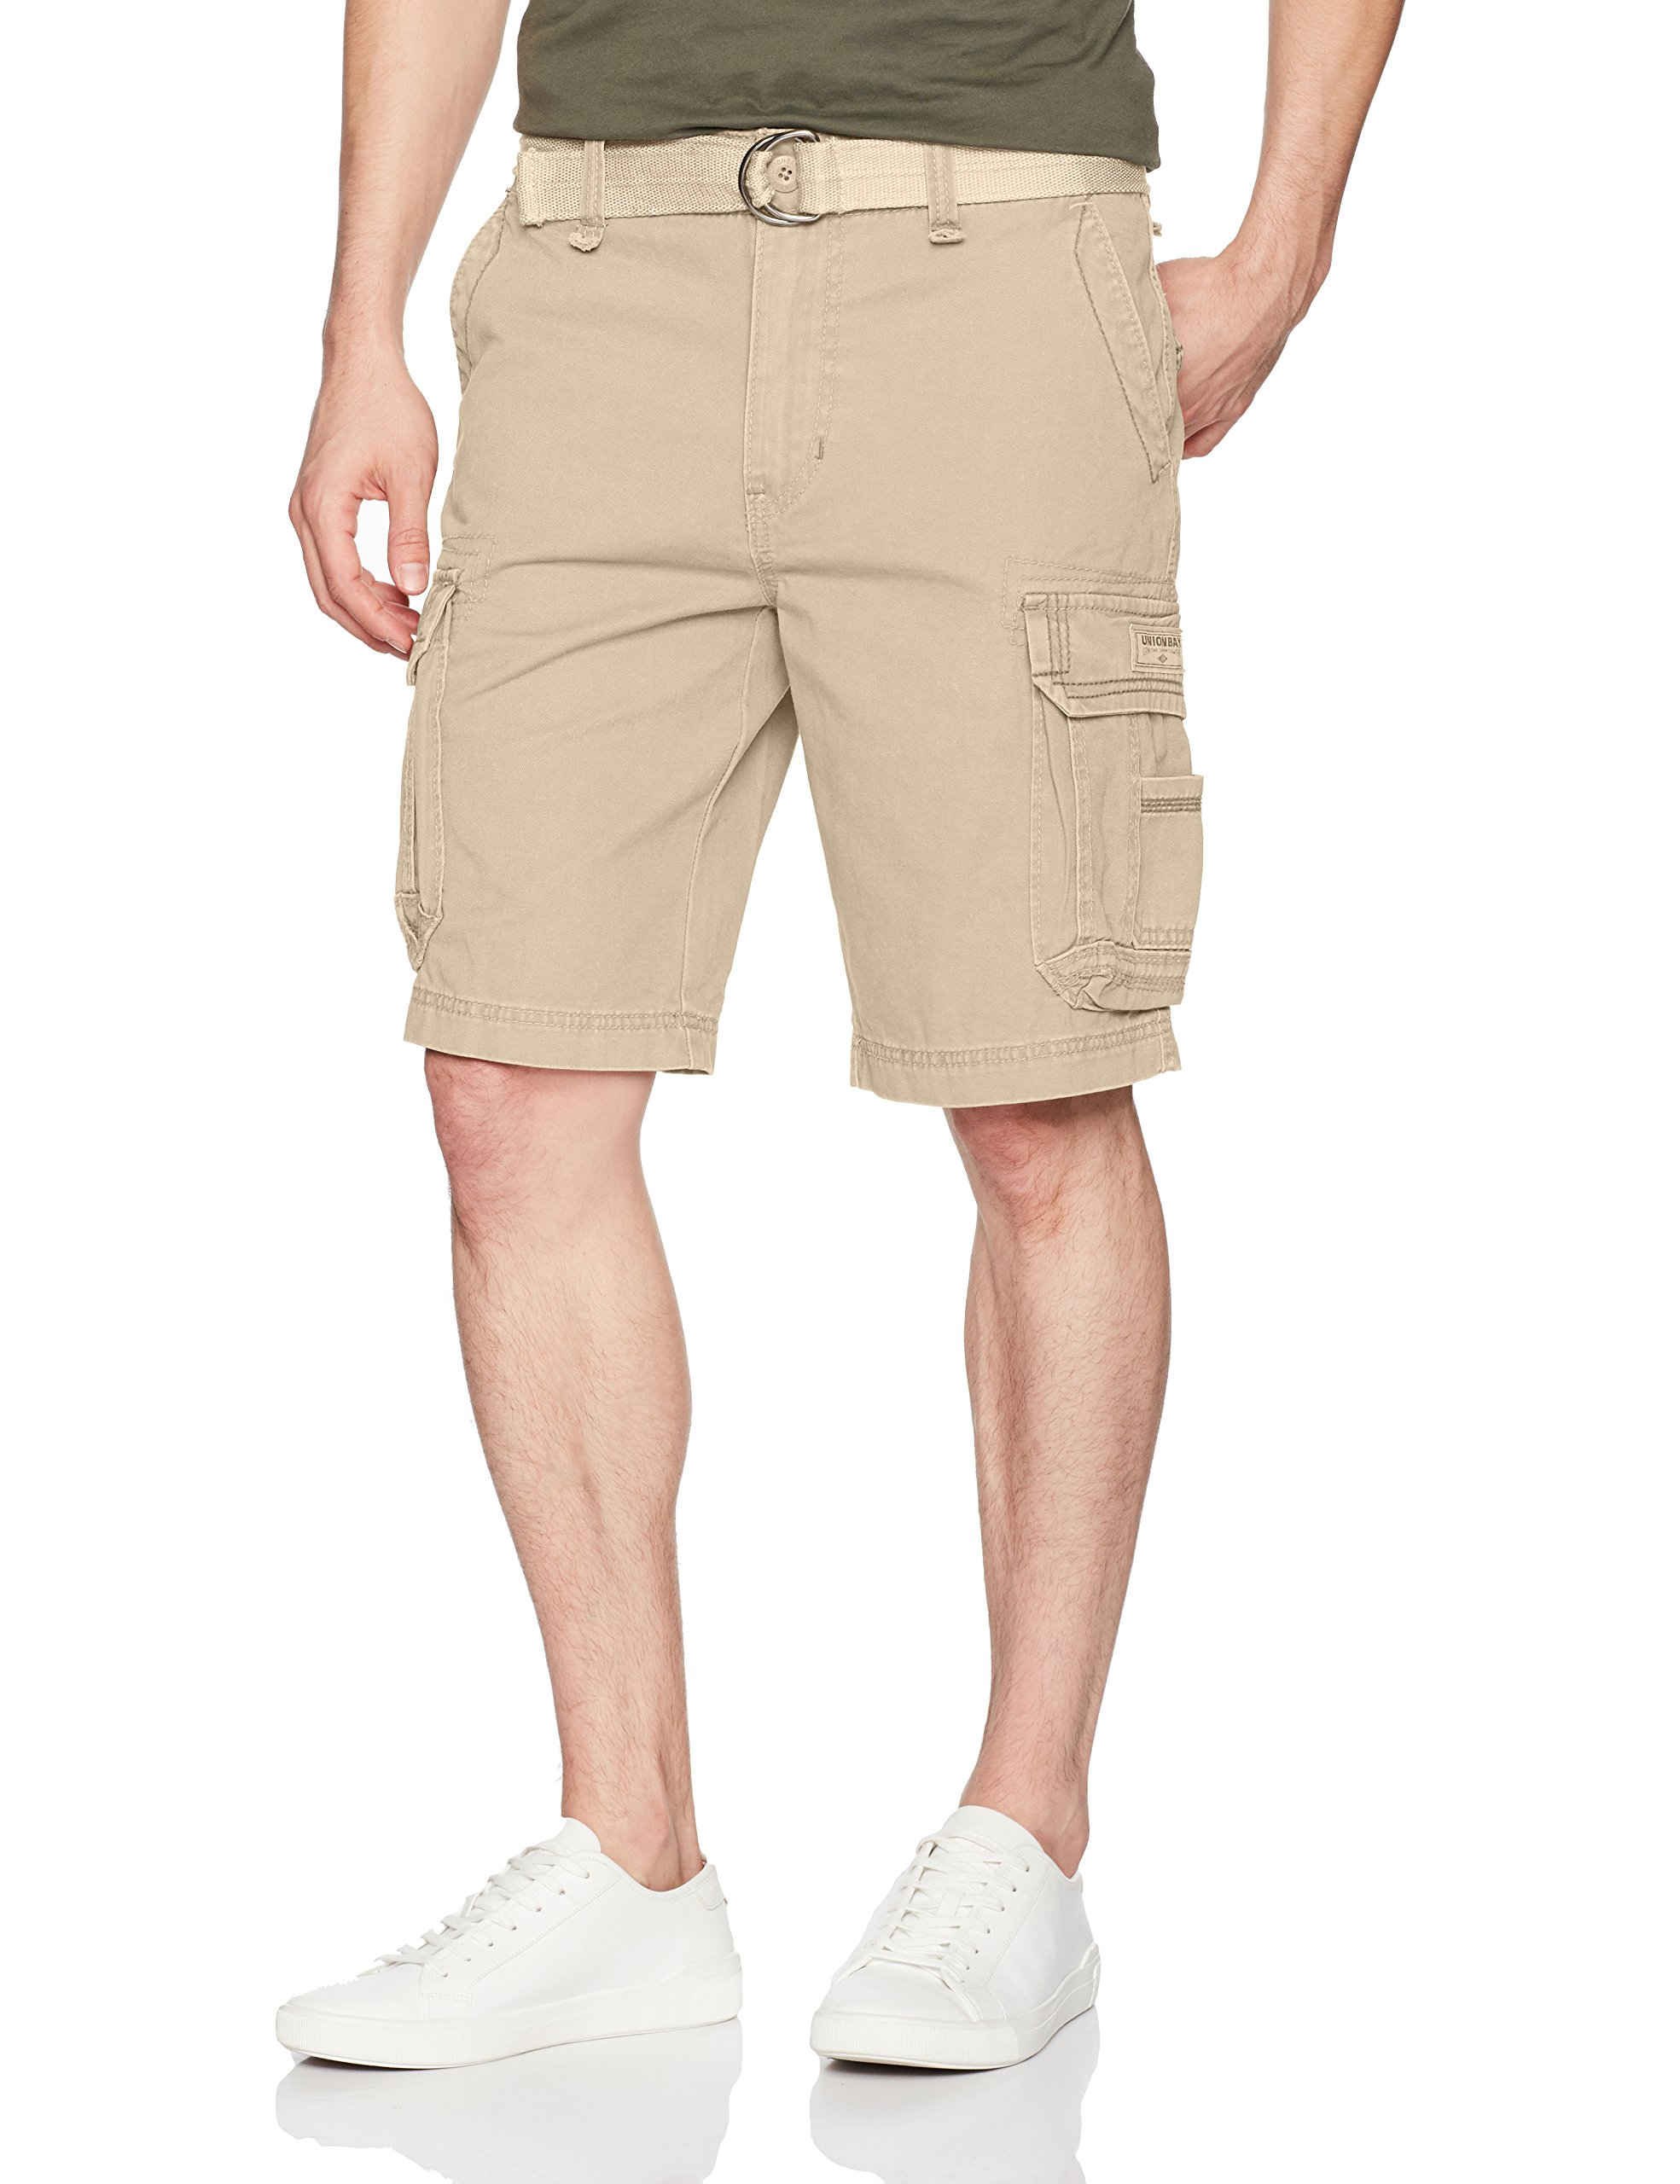 UNIONBAY Men's Survivor Belted Cargo Short, Desert 44 by UNIONBAY (Image #1)